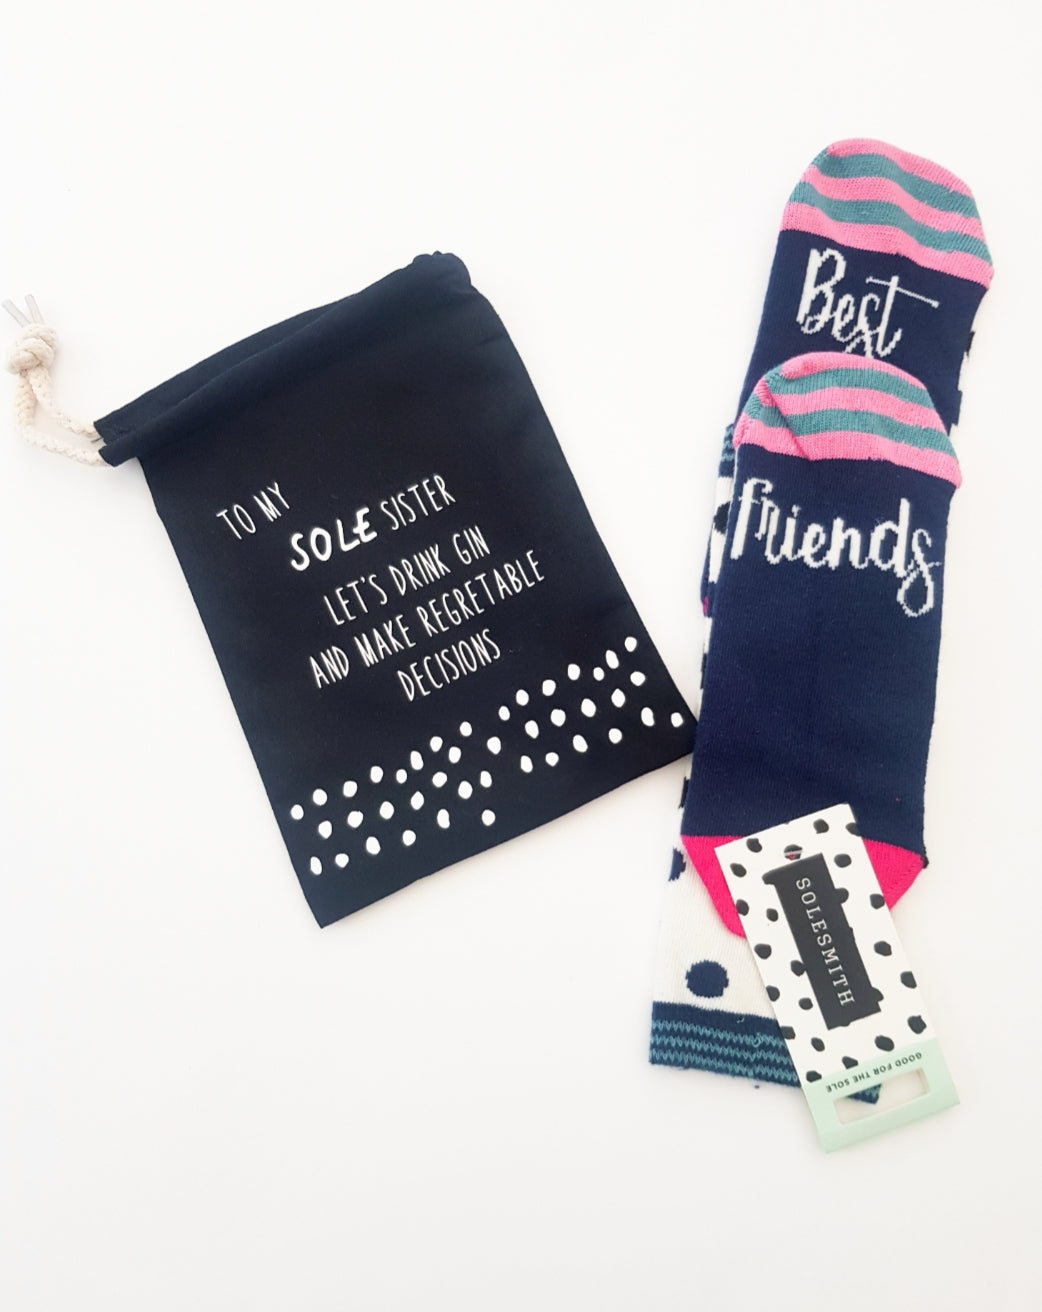 Sole sister sock bag